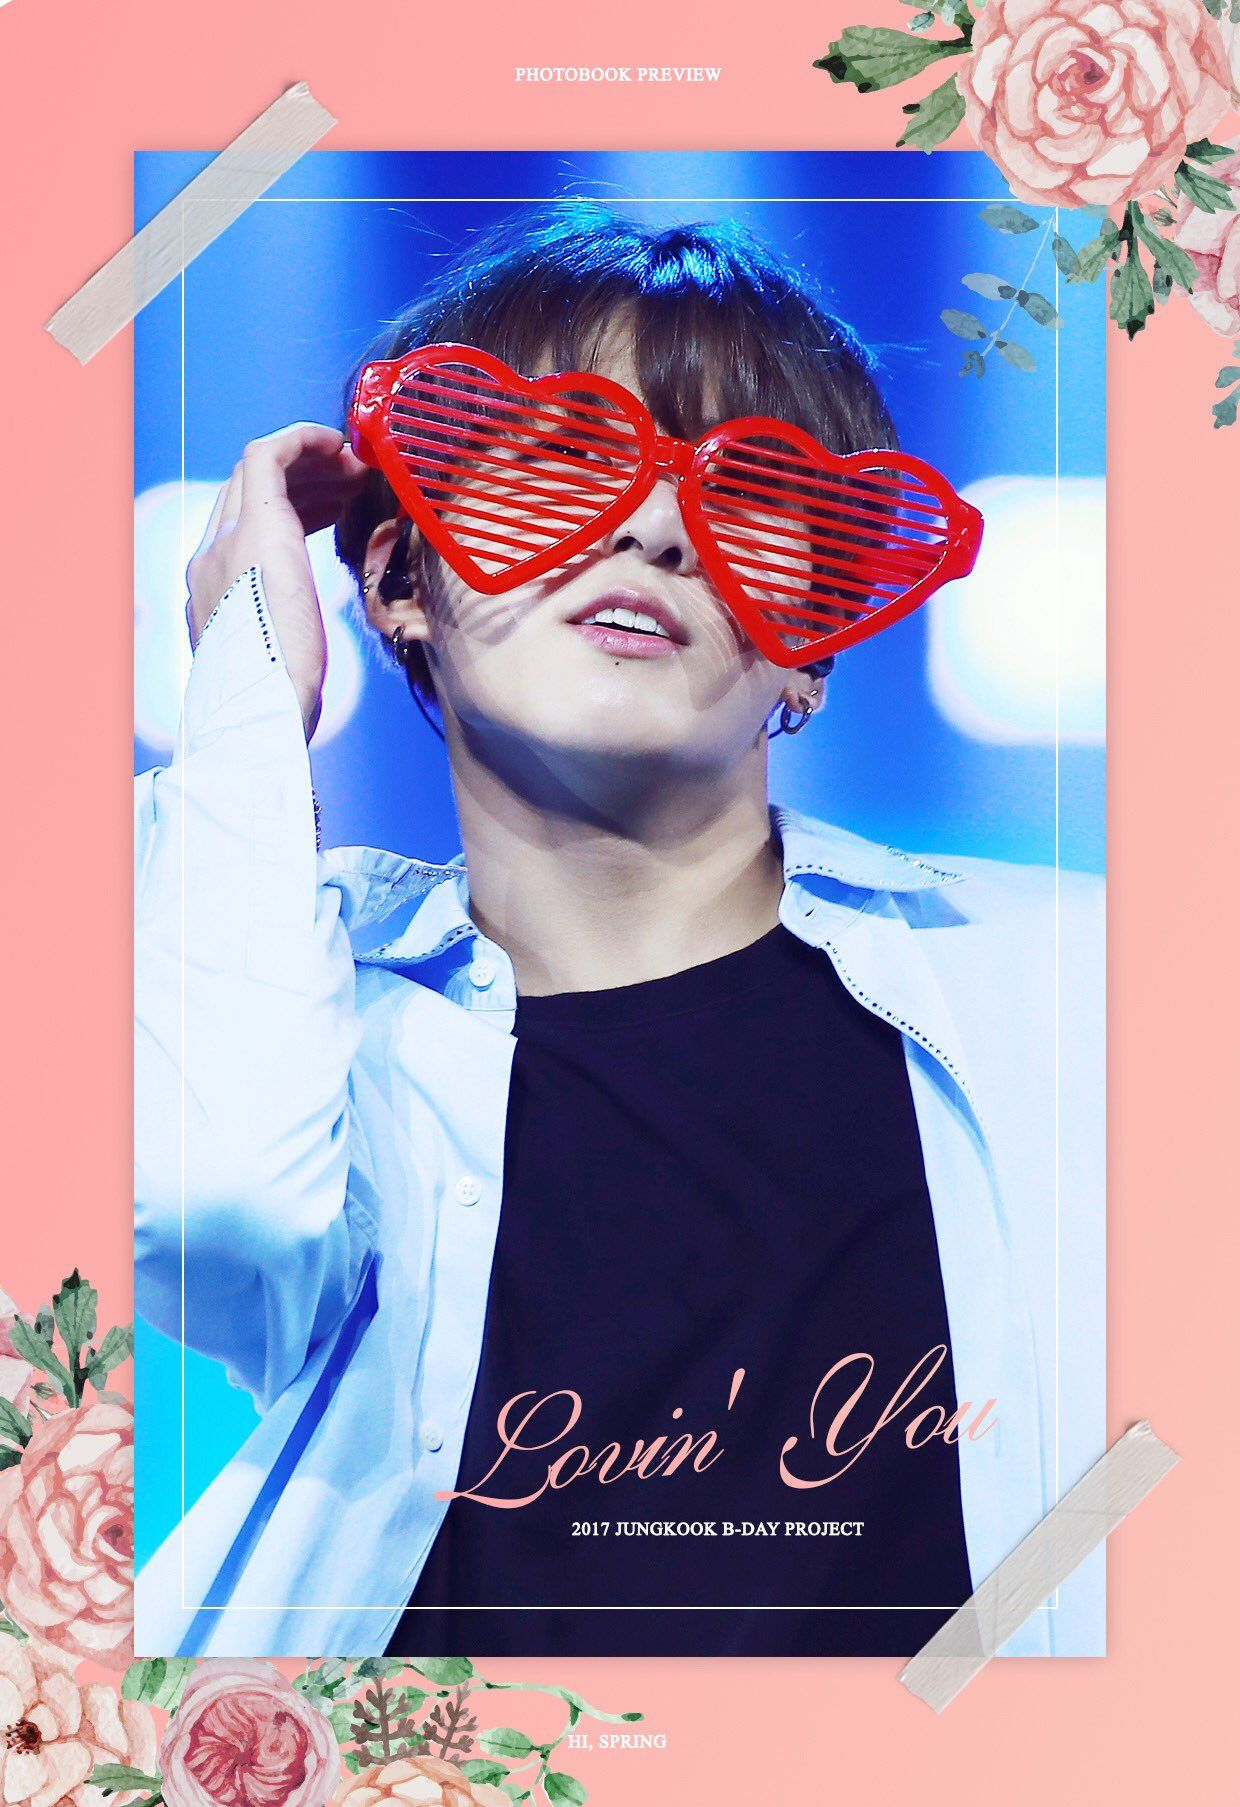 안녕,봄 on (With images) Jungkook, Photo book, Birthday